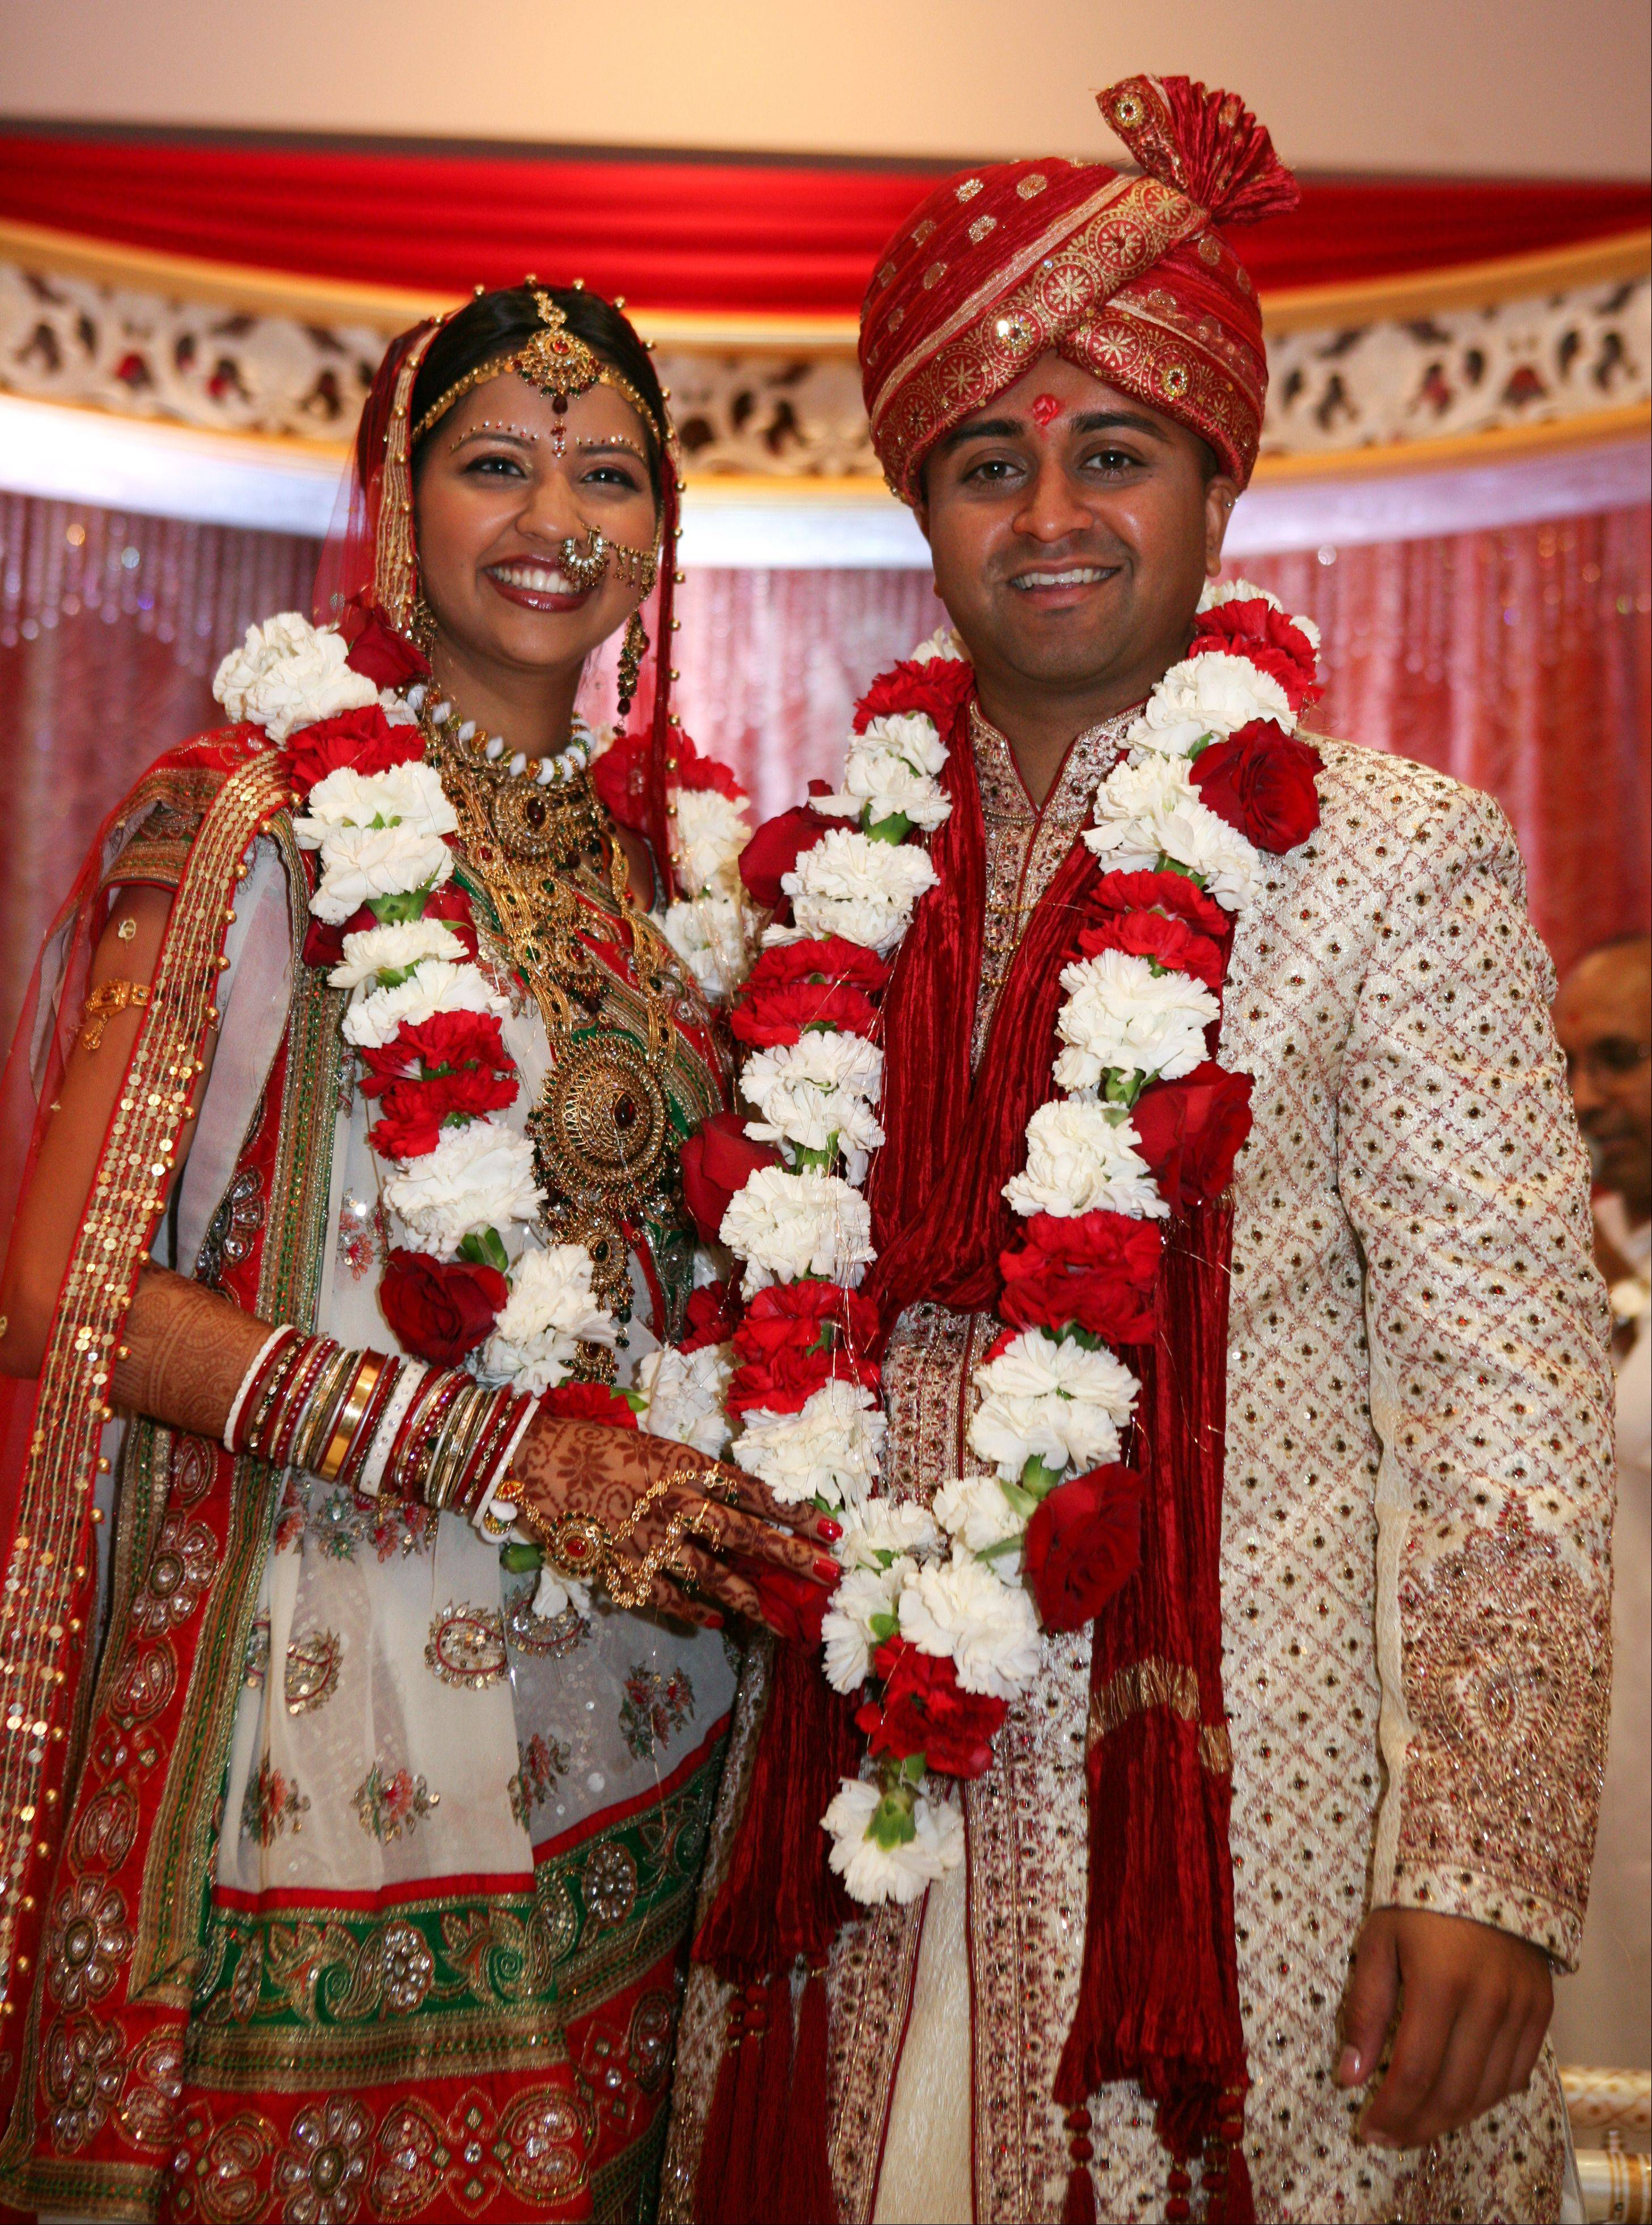 Roopa Desai and her husband, Luv, after their wedding Aug. 8, 2009.